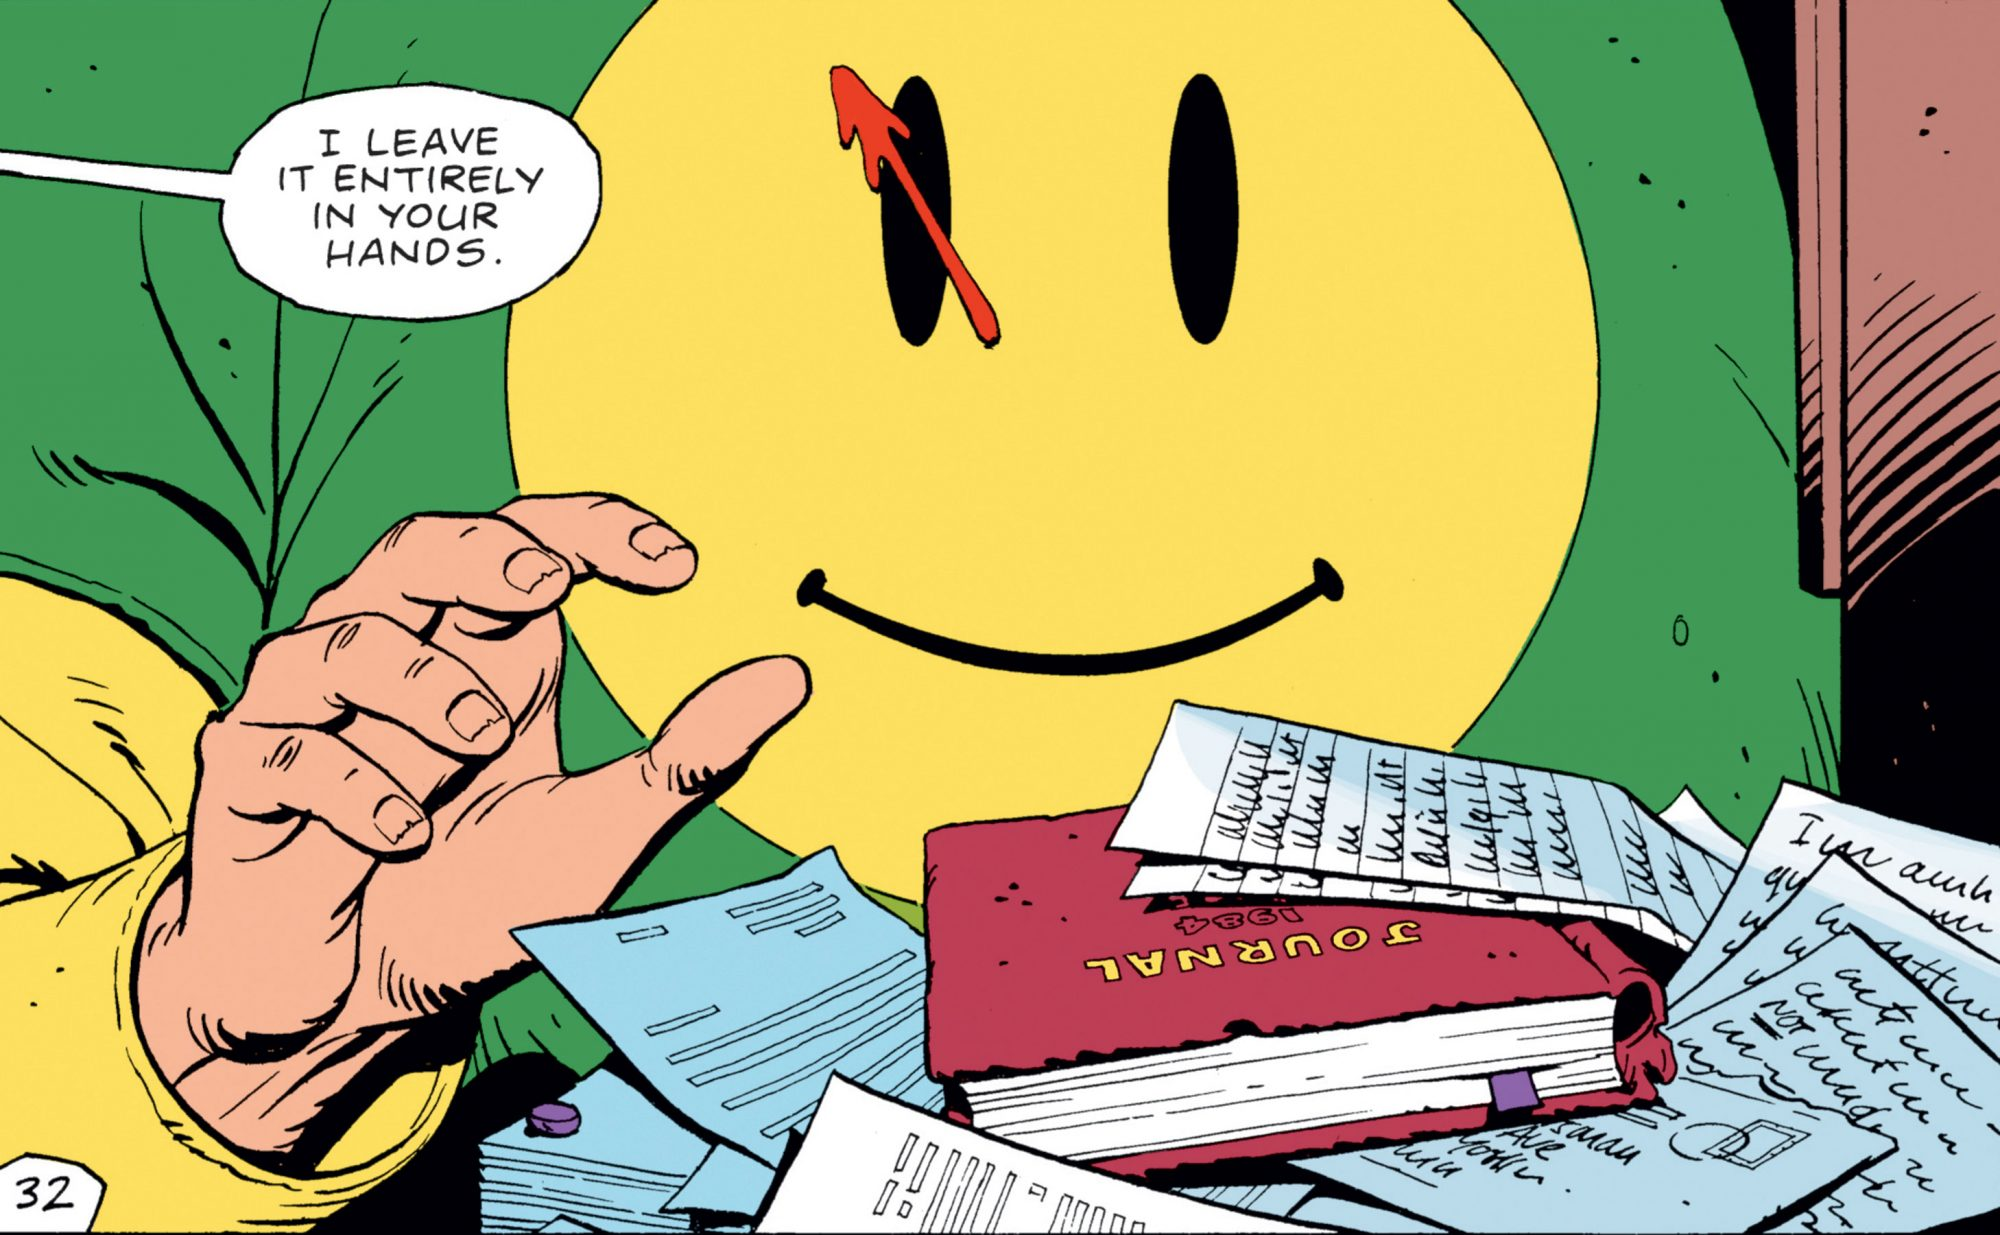 The WatchmenCREDIT:ALAN MOORE & DAVE GIBBONS/DC COMICS